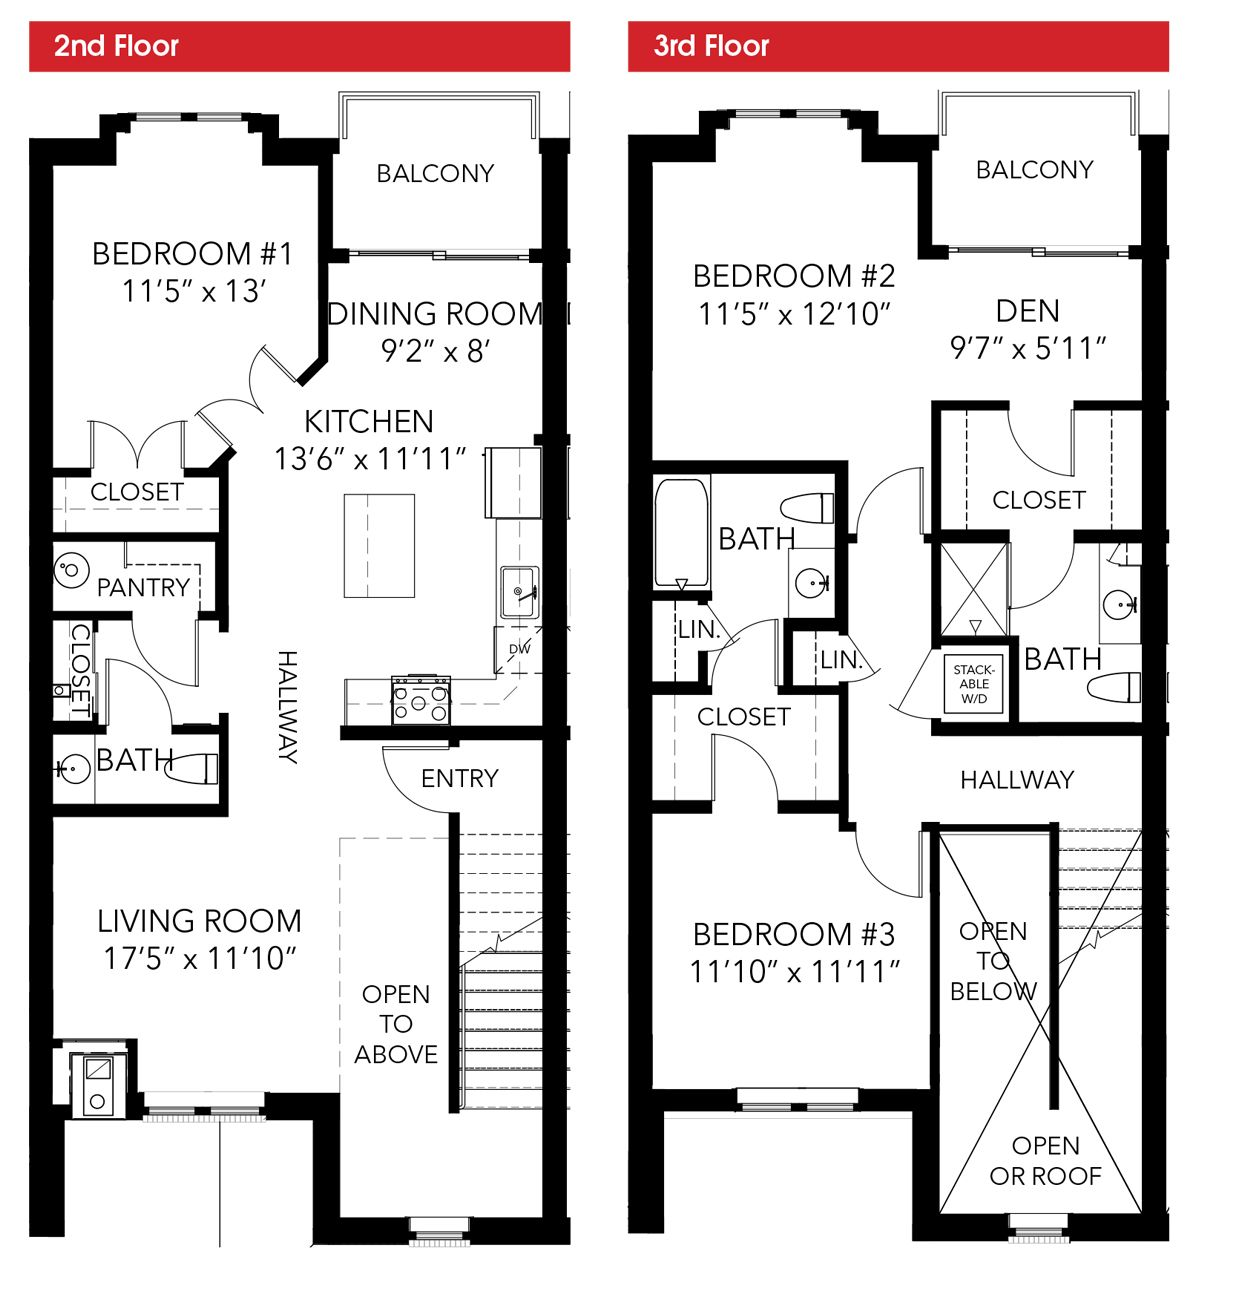 Gorgeous 50 2 story condo floor plans decorating design for Plans for townhouses